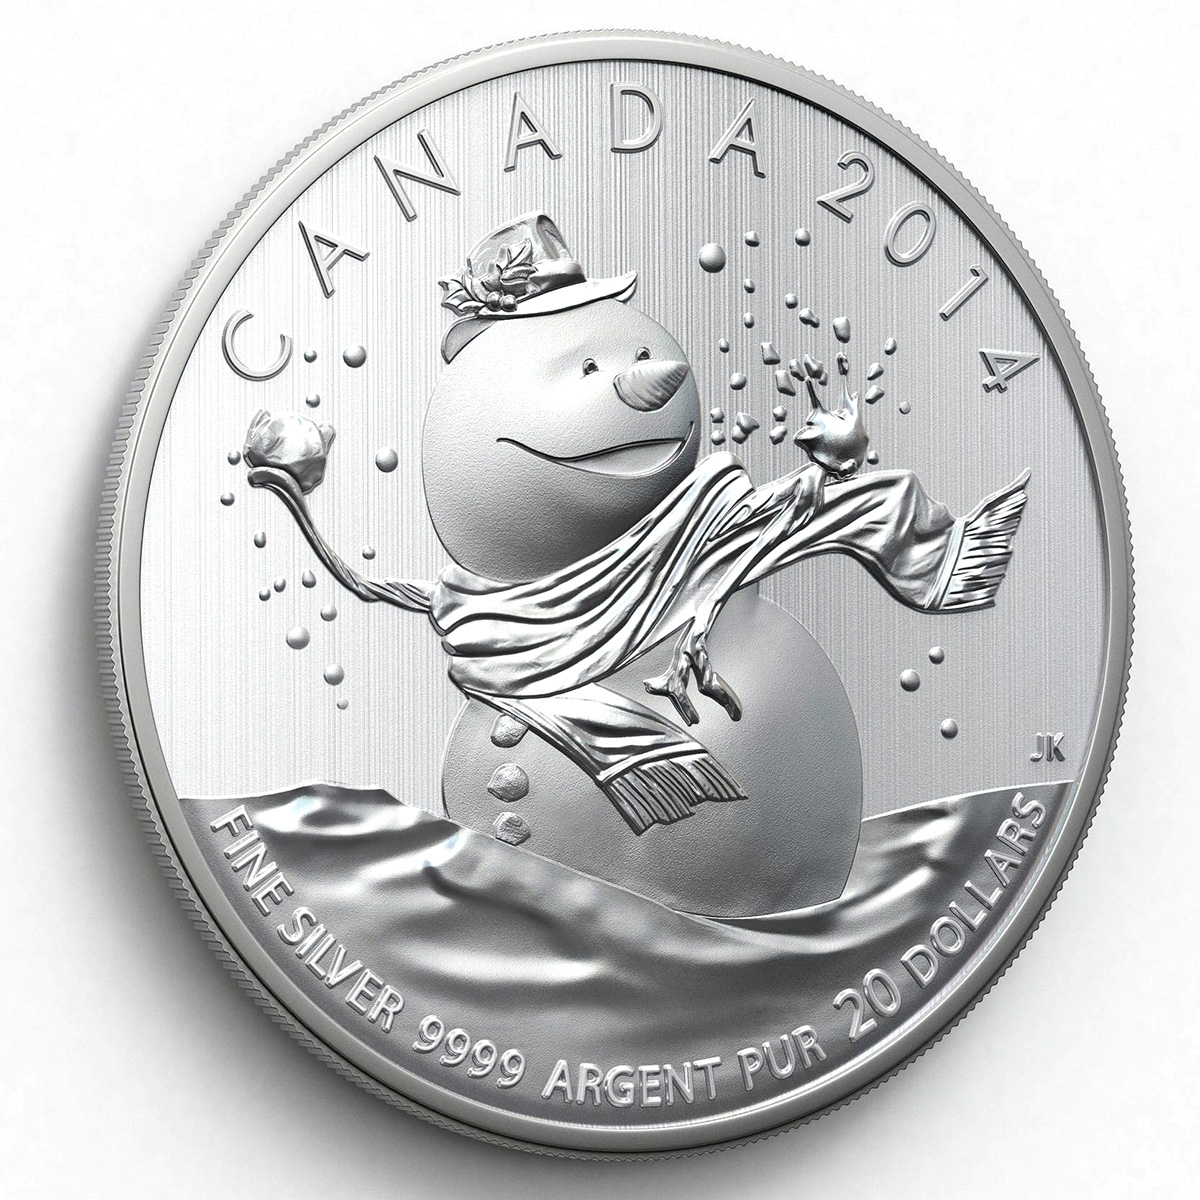 CANADA 2014 $20 Fine Silver Commemorative Coin - Snowman - $20 for $20 - #14 In Series